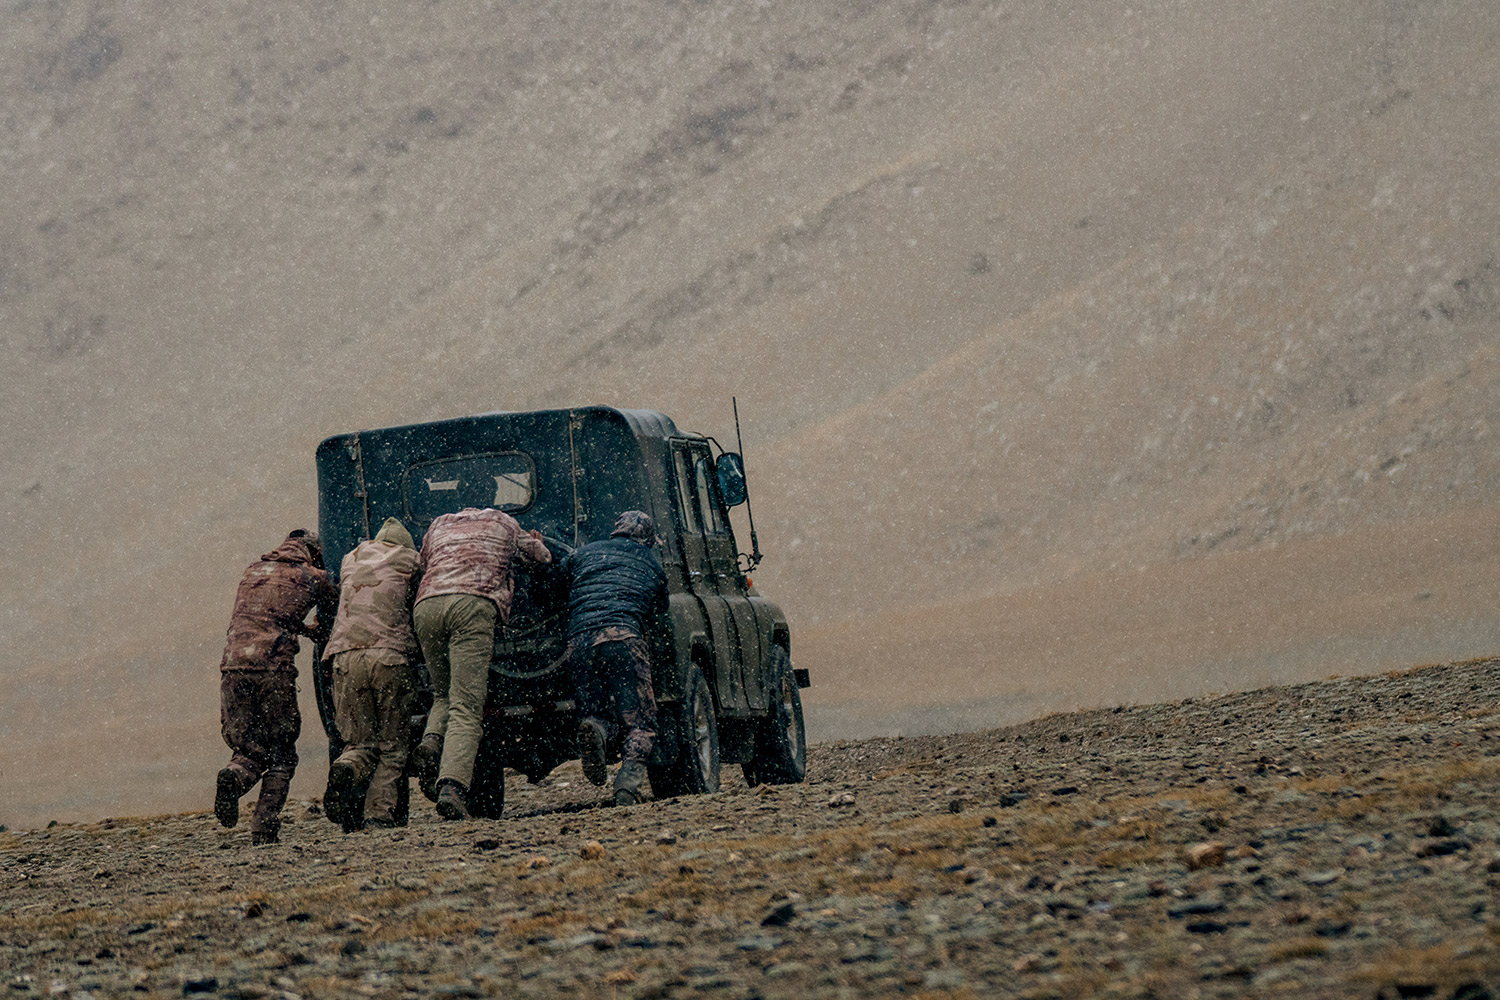 Pushing a jeep which broke down while attempting to reach the hunting destination.